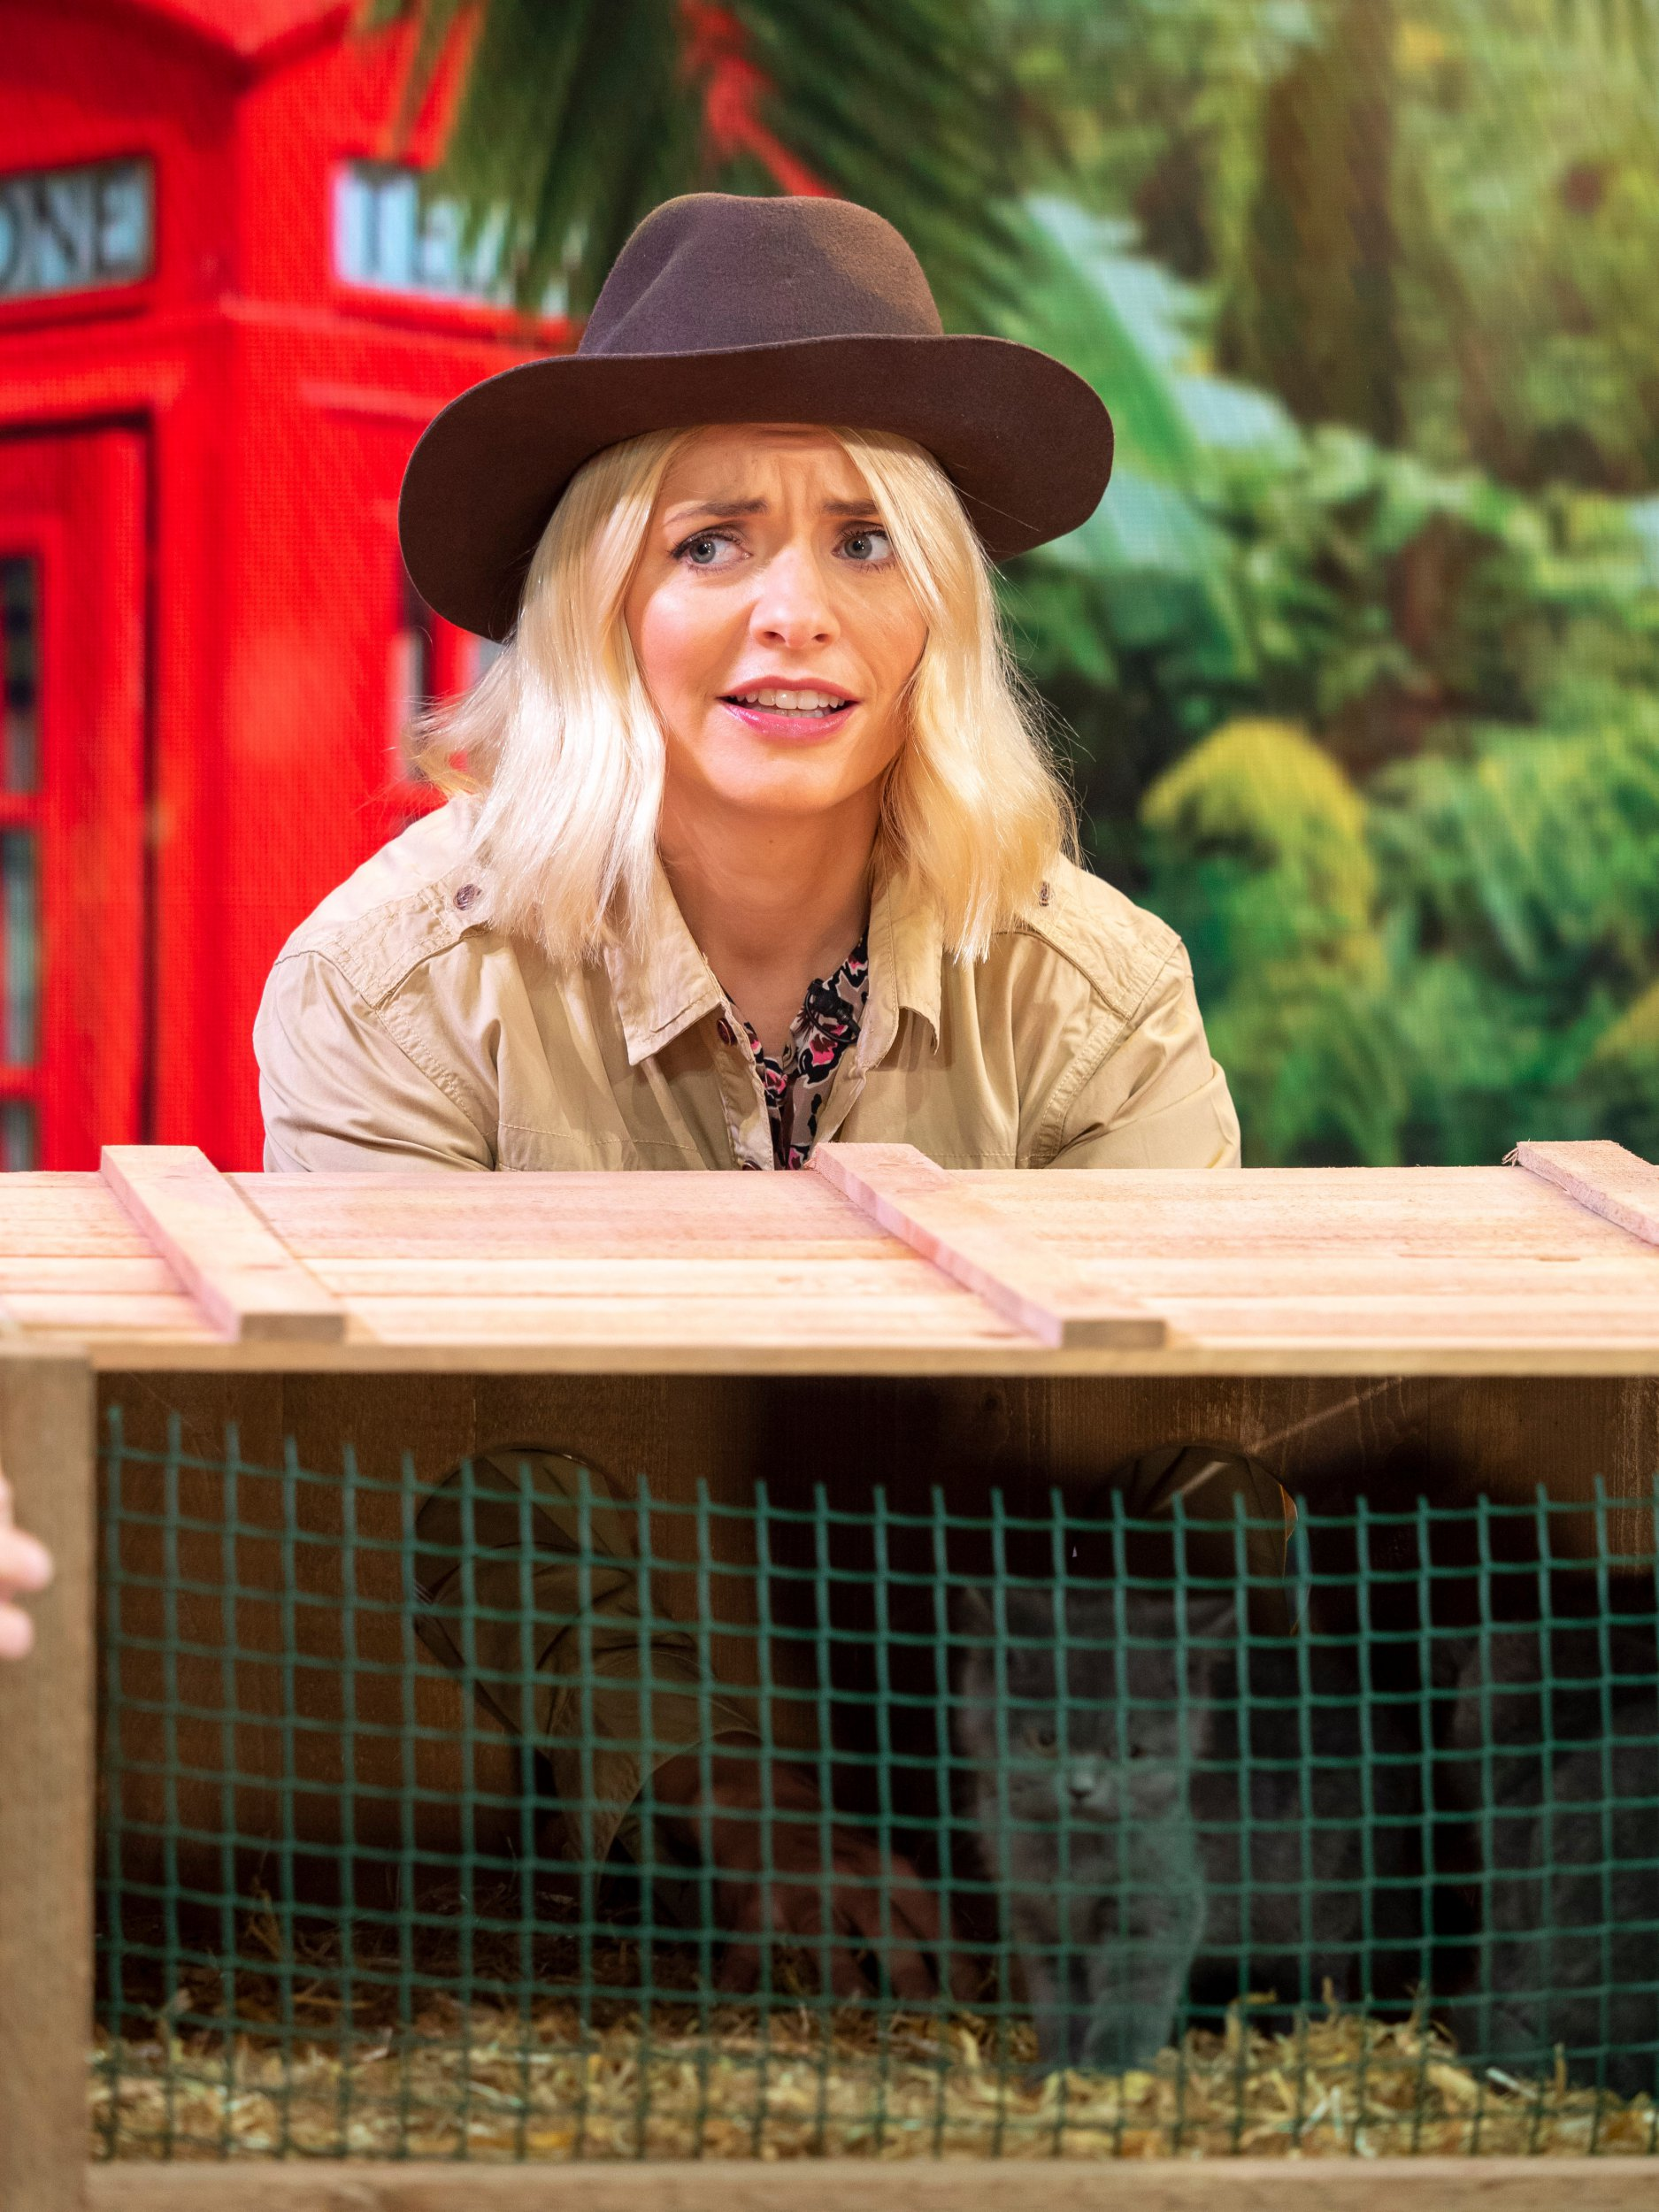 Editorial use only Mandatory Credit: Photo by Ken McKay/ITV/REX/Shutterstock (9937103dy) Holly Willoughby 'This Morning' TV show, London, UK - 18 Oct 2018